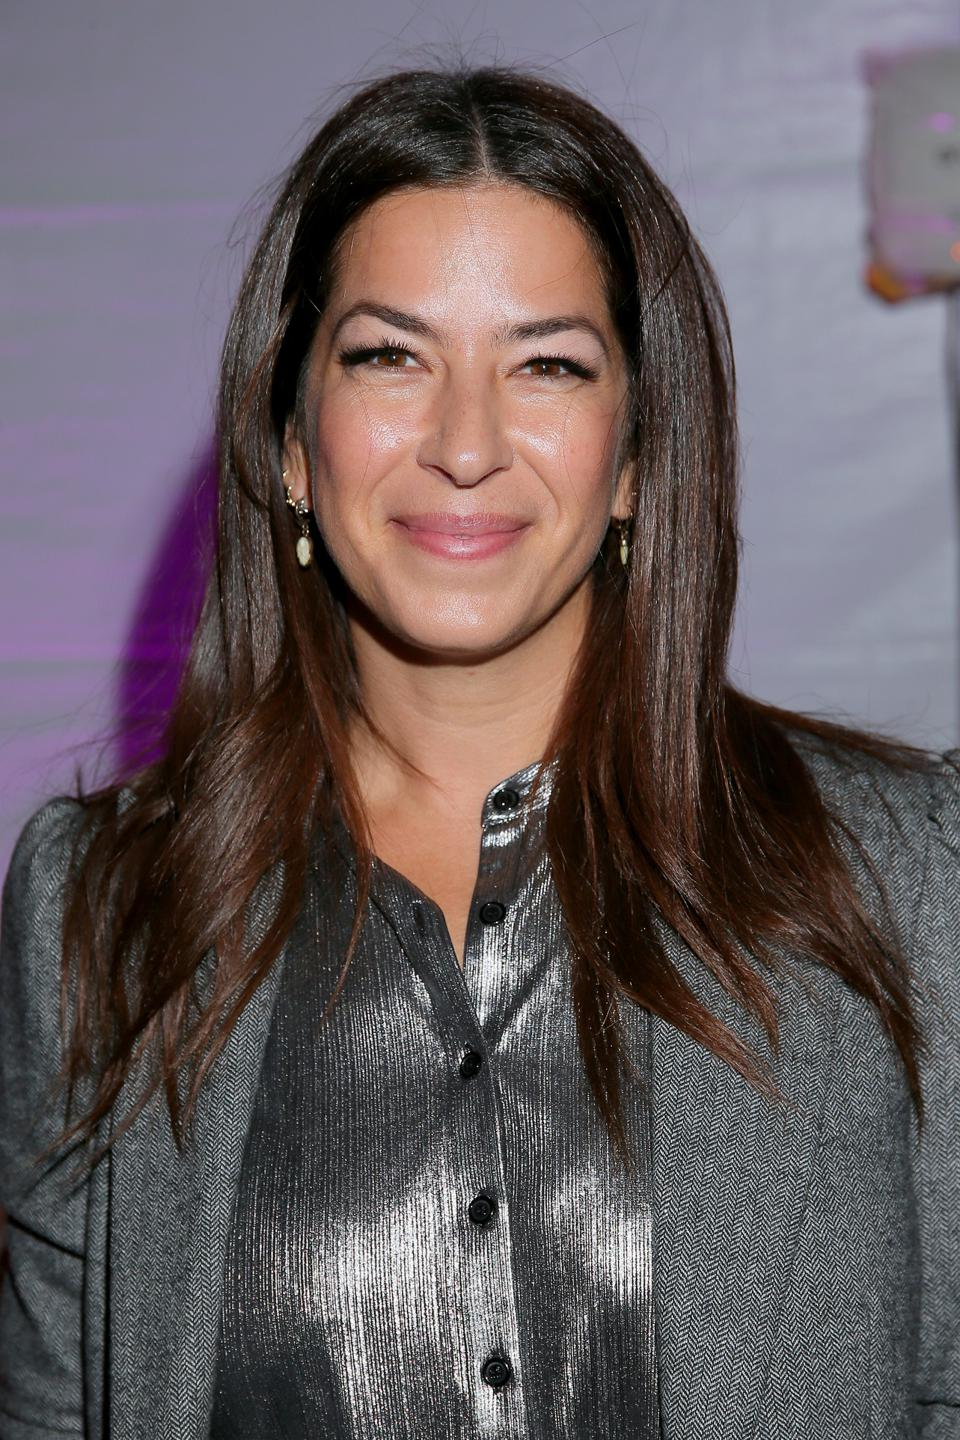 Rebecca Minkoff has a fearless approach to fashion that's served the brand well.